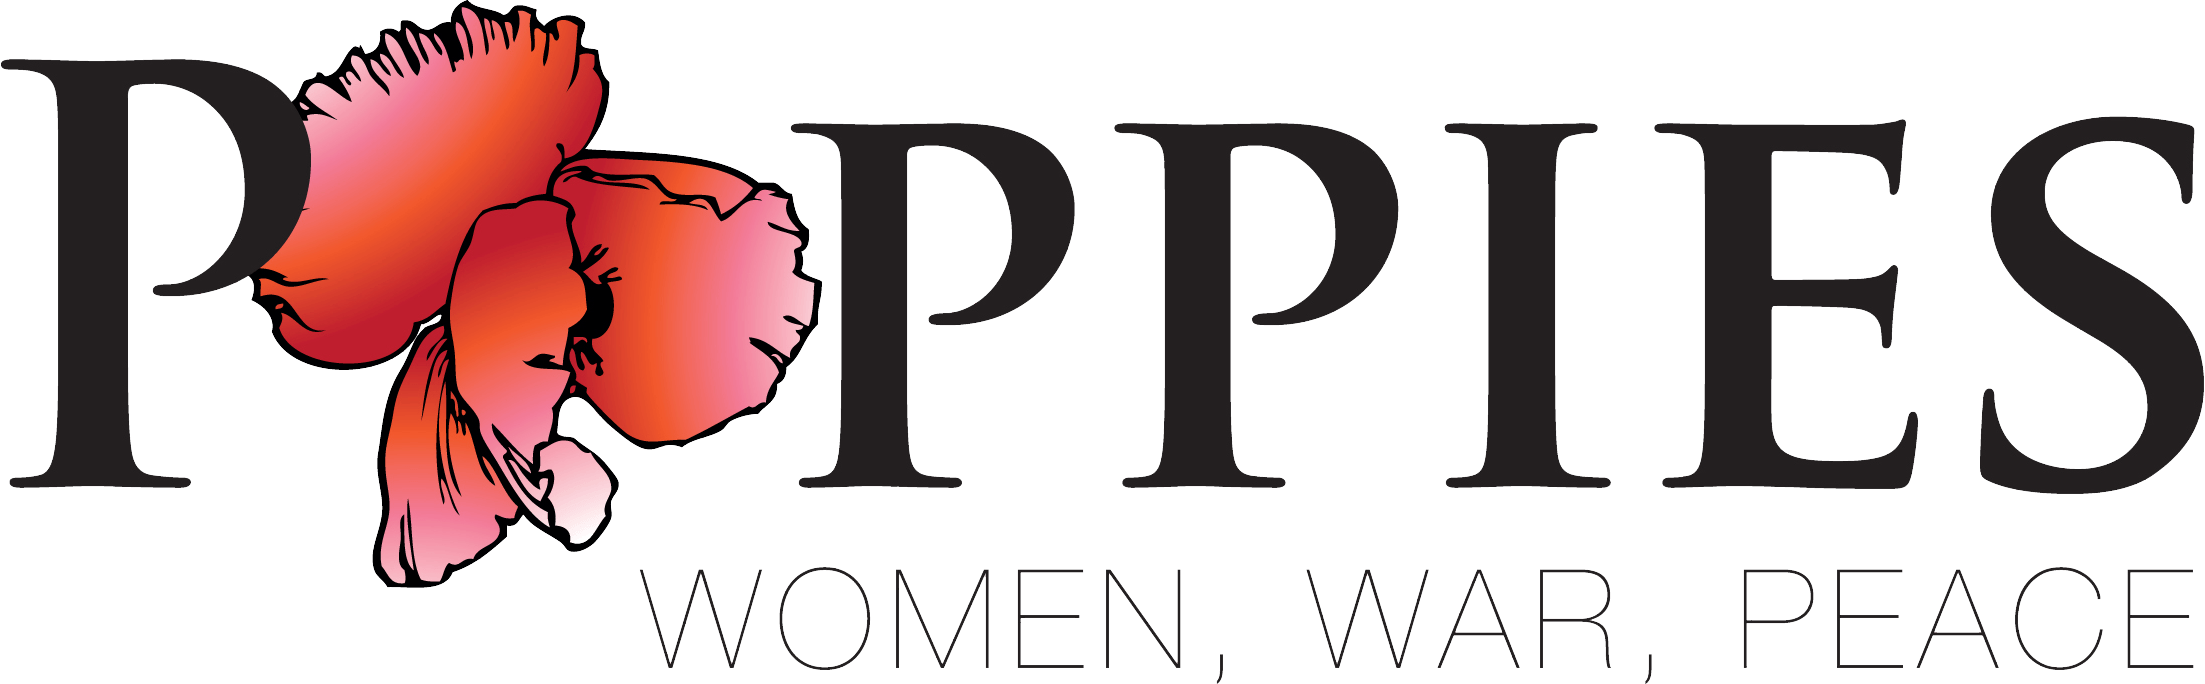 Poppies women war peace. Poppy clipart flanders field